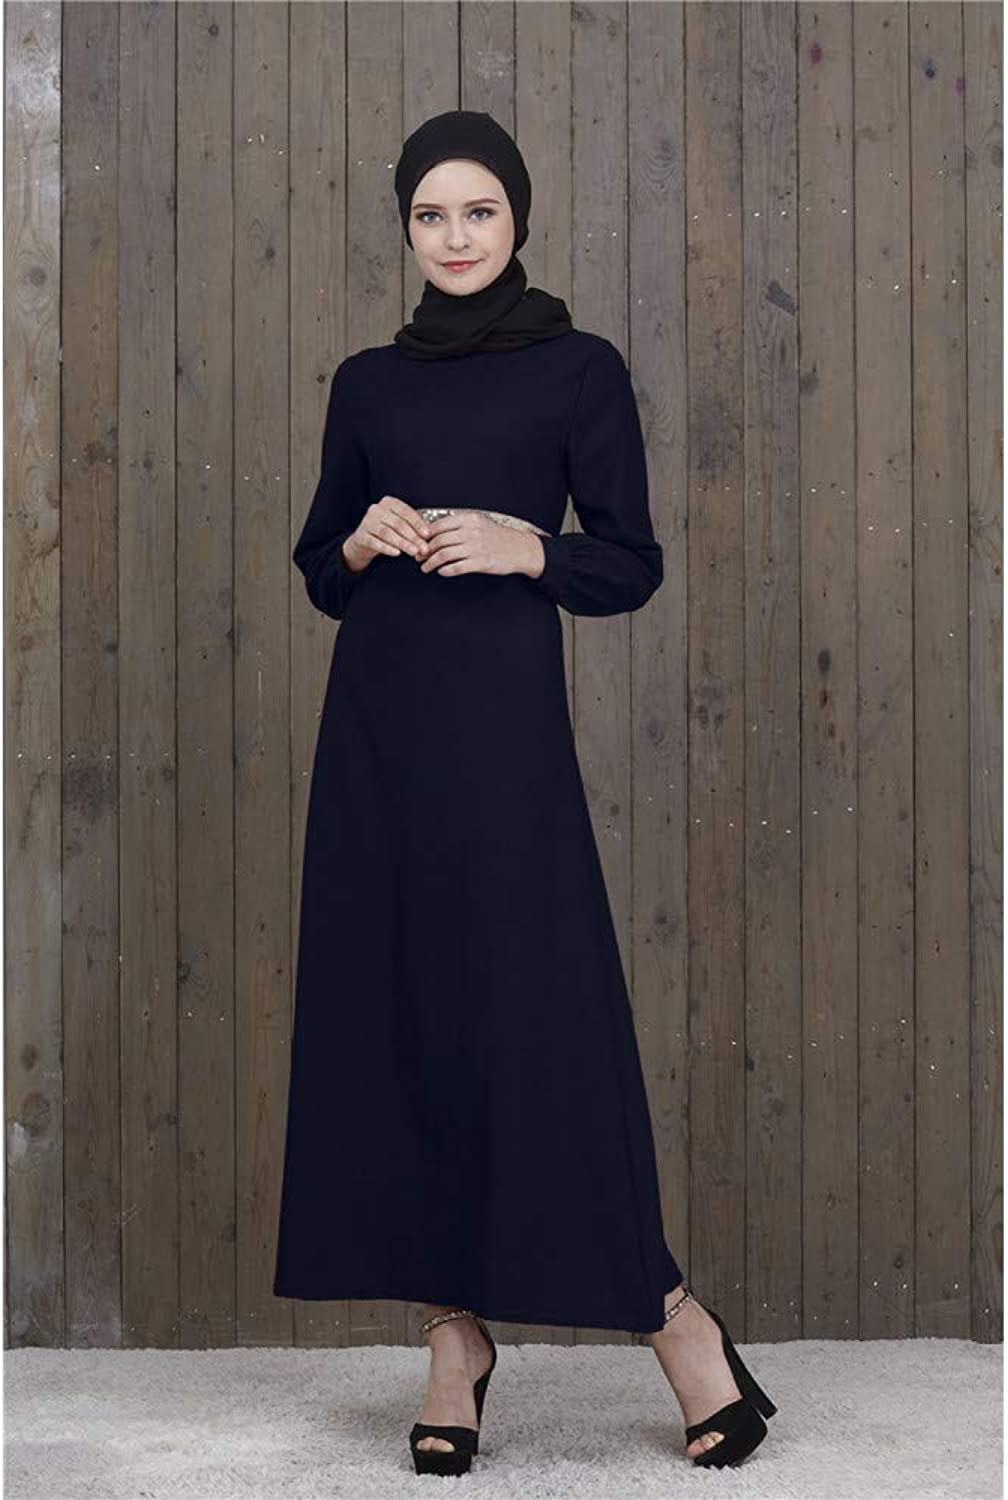 Cxlyq Dresses Long Skirt Fashion Single Layer Impervious Sun Robes Robe